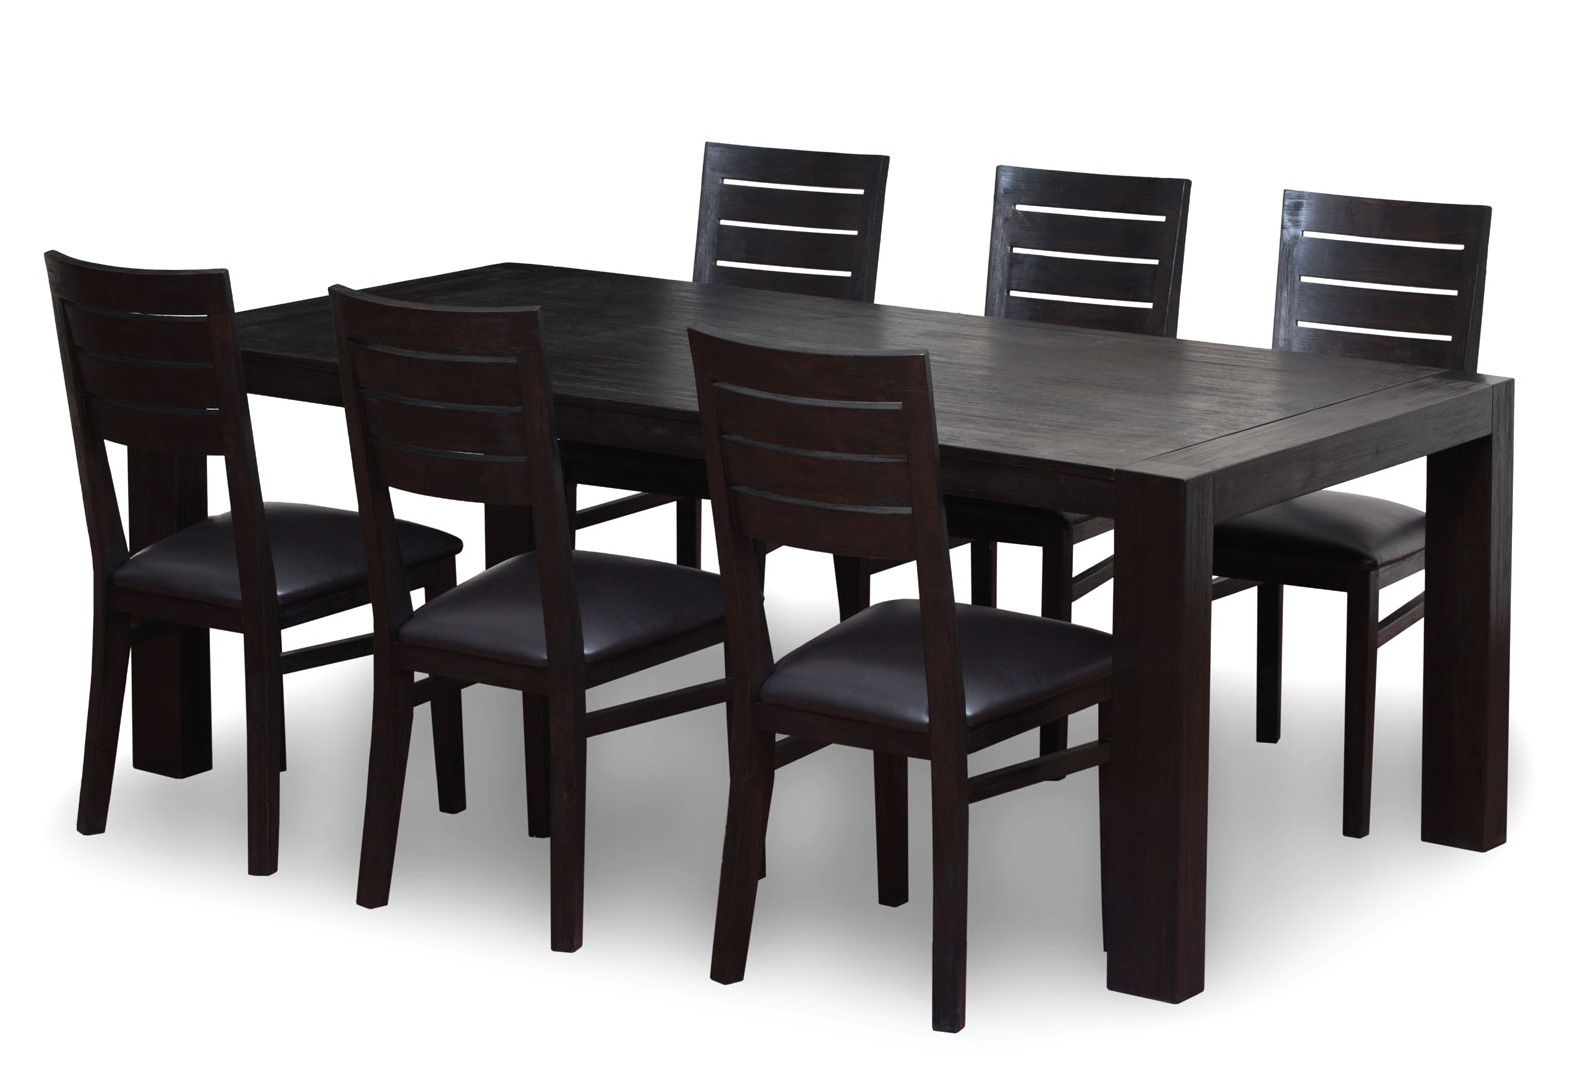 Outstanding Black Dining Room Table 1591 x 1069 · 217 kB · jpeg